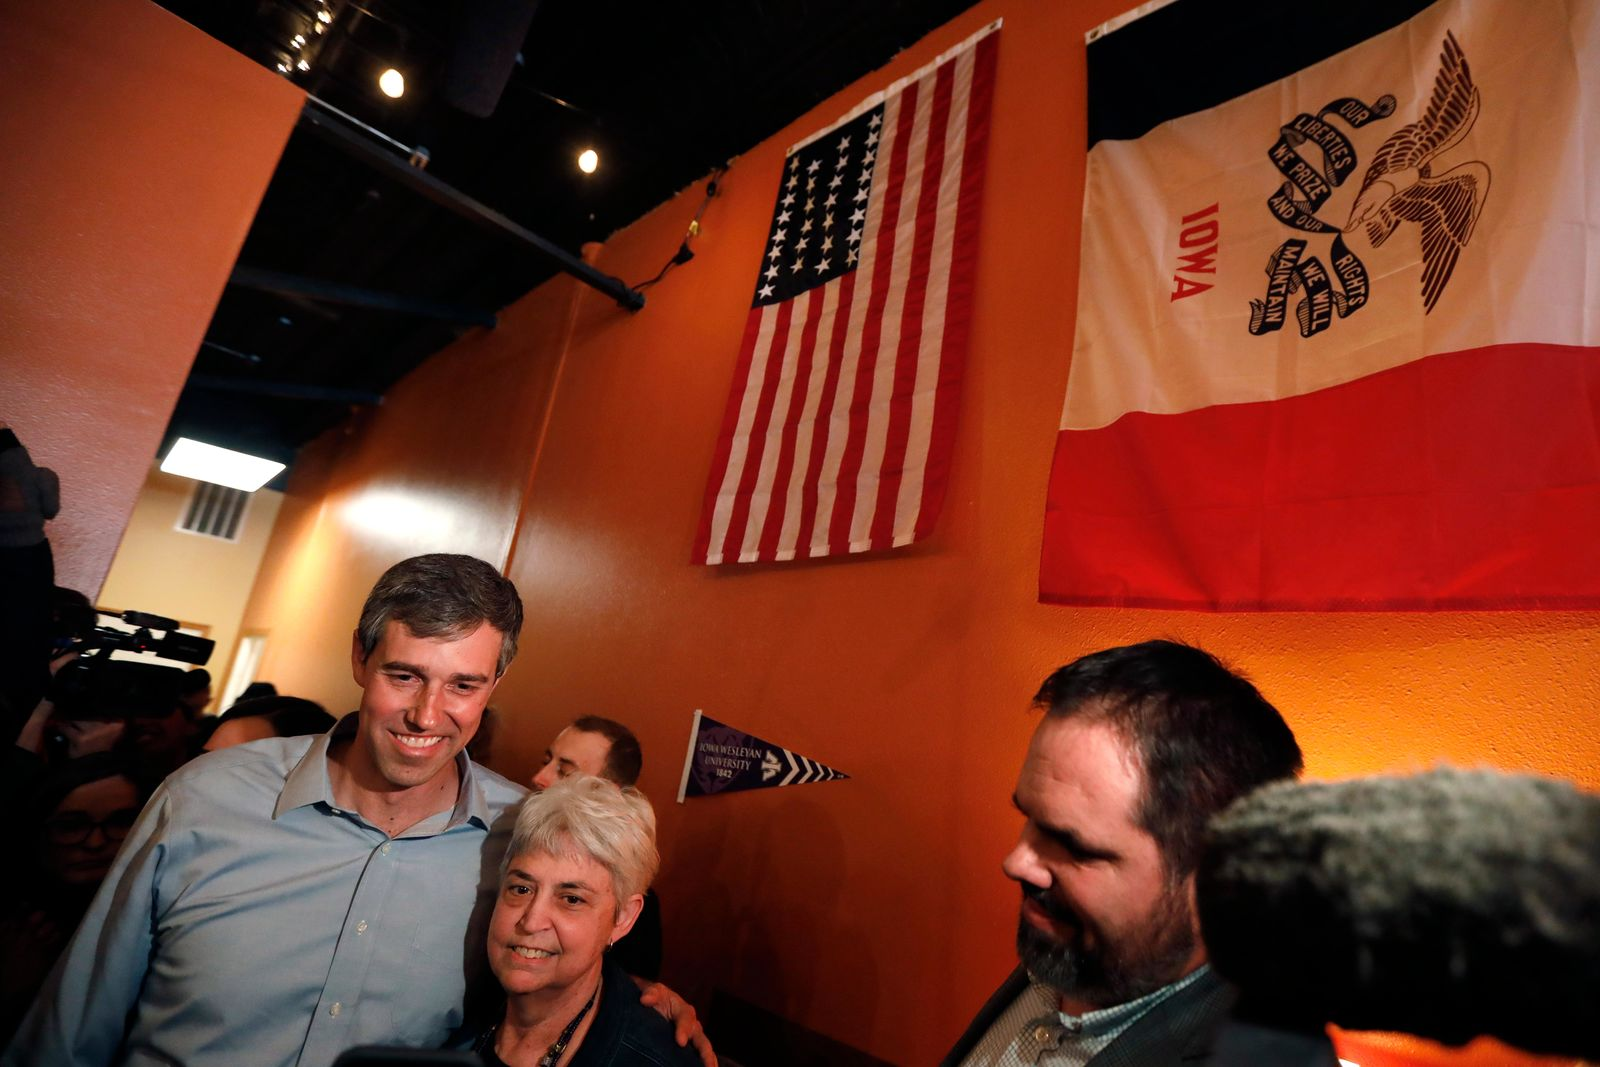 Former Texas congressman Beto O'Rourke poses for a photo with an audience member during a stop at the Central Park Coffee Company, Friday, March 15, 2019, in Mount Pleasant, Iowa. (AP Photo/Charlie Neibergall)